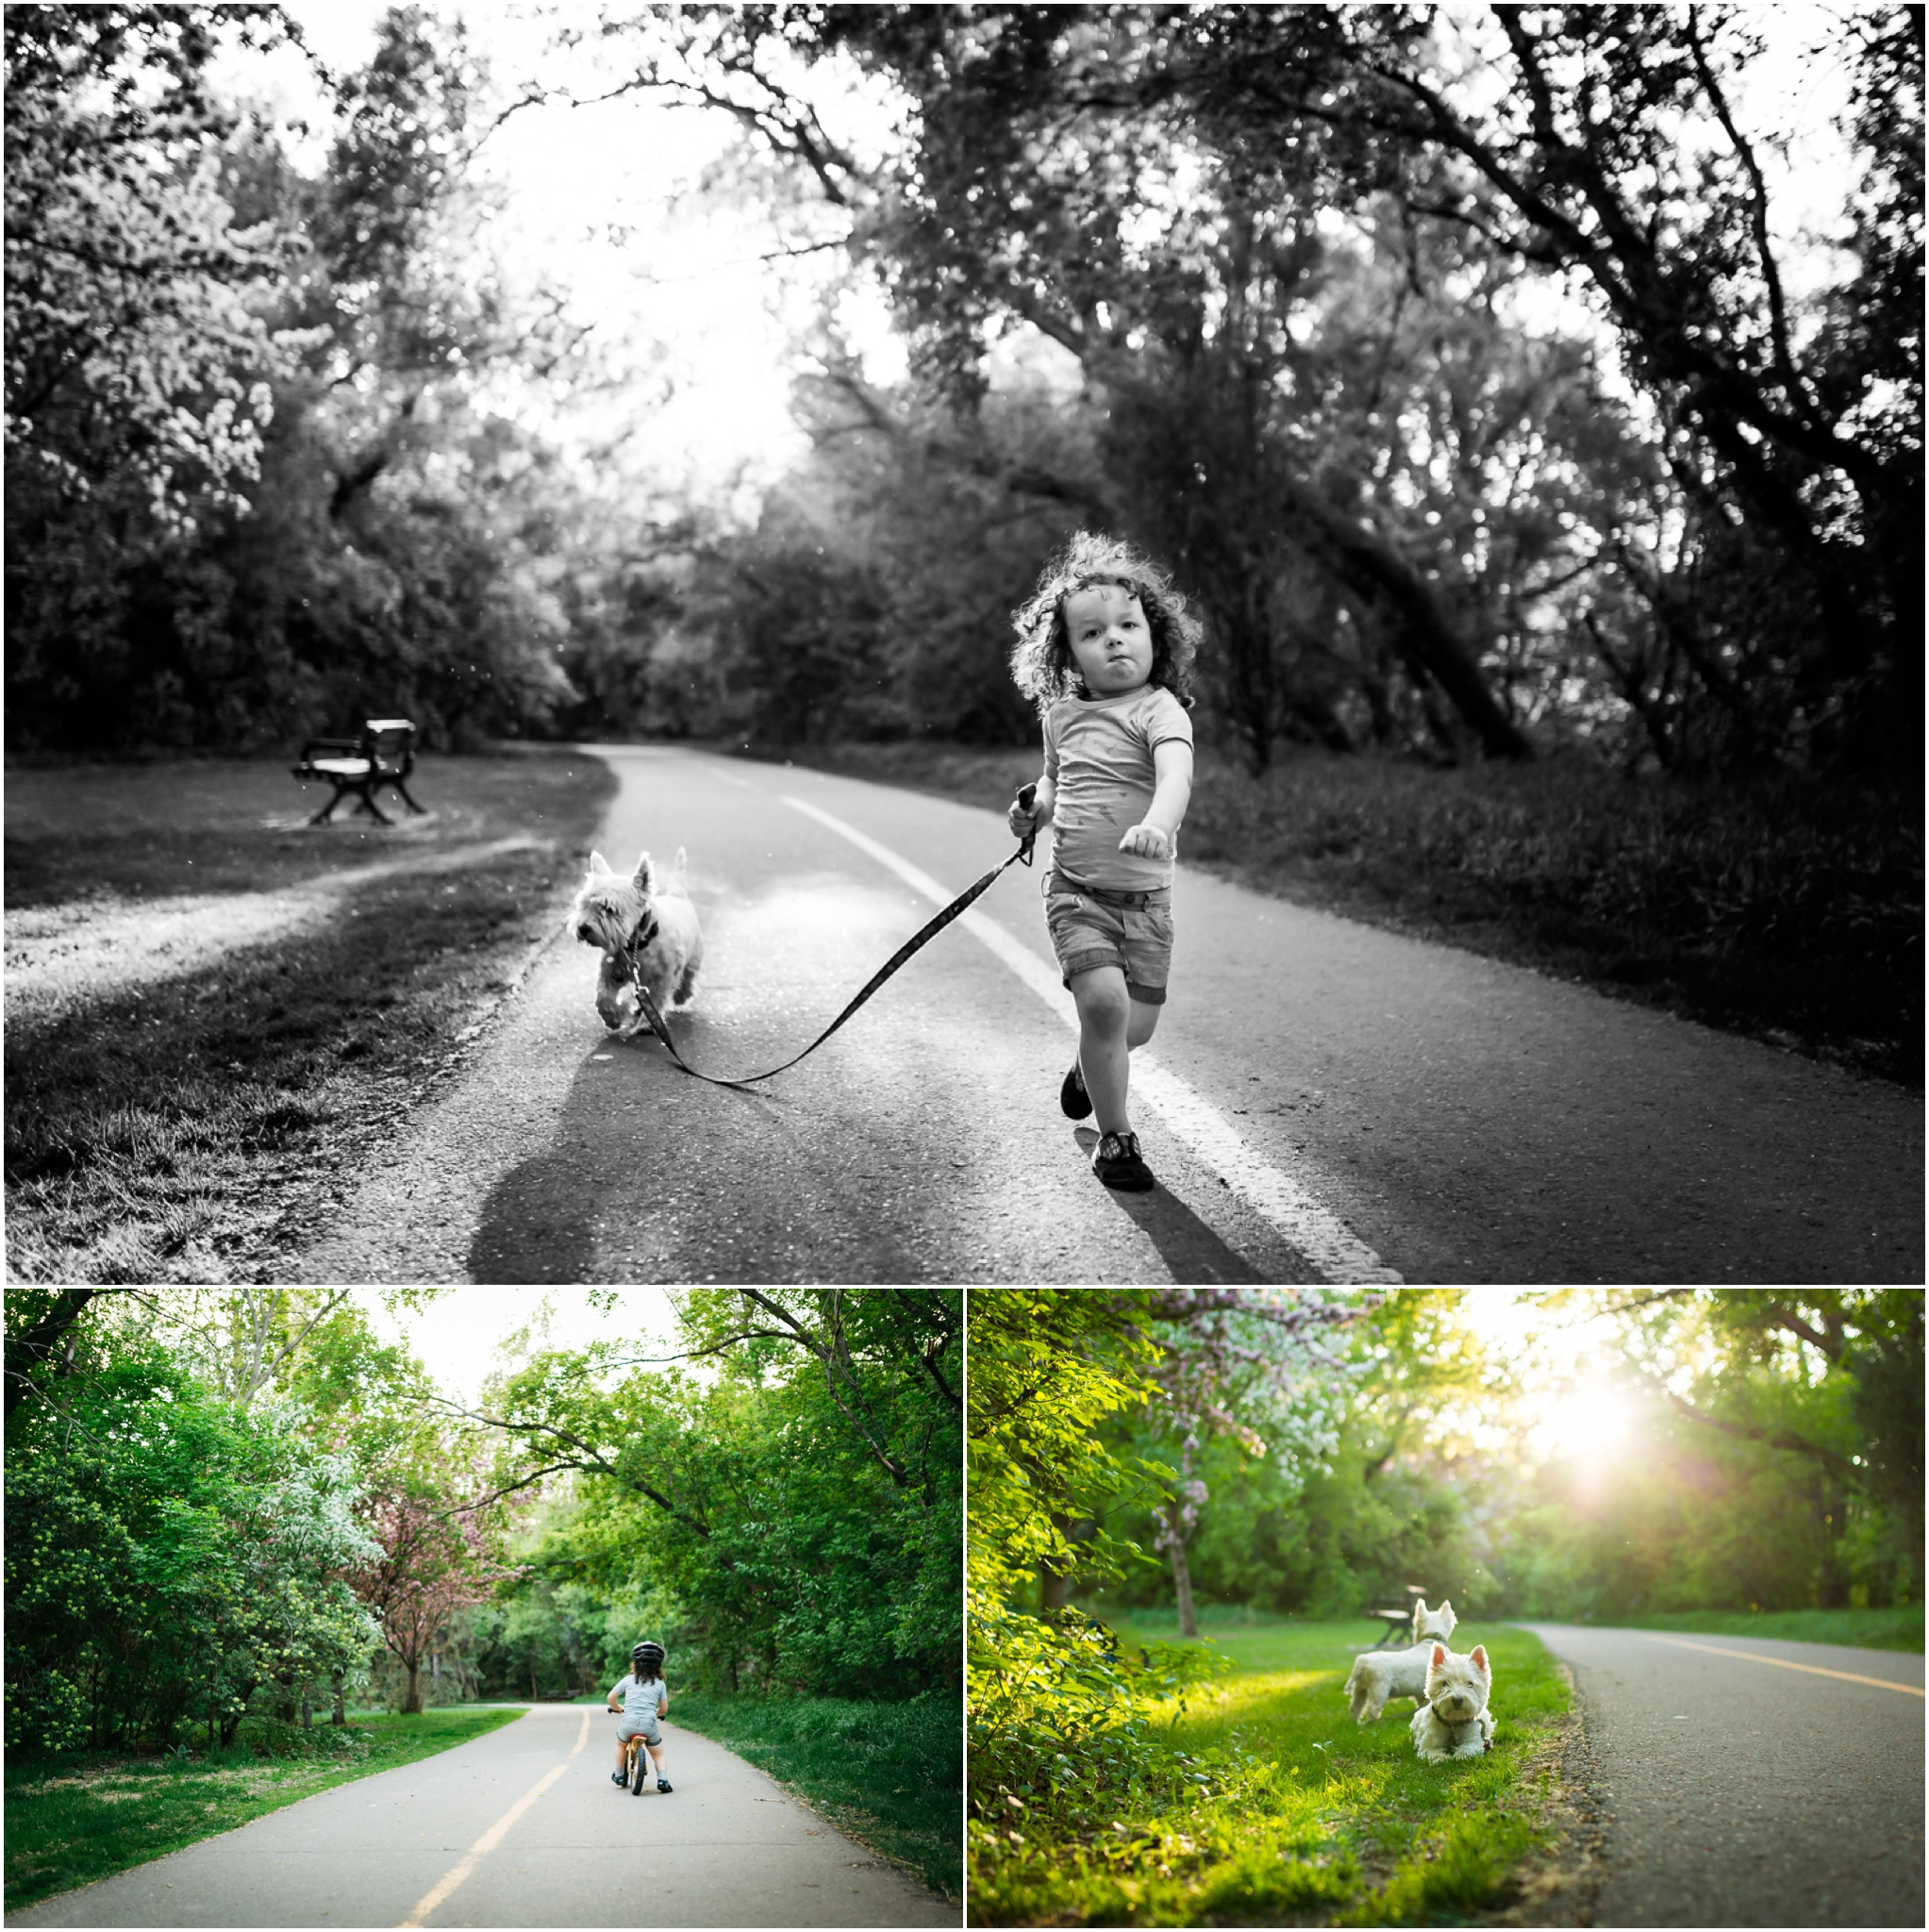 Edmonton Lifestyle Photographer - Best of 2016 - Spring Blossom Week Westie - A boy and his dog - YEG